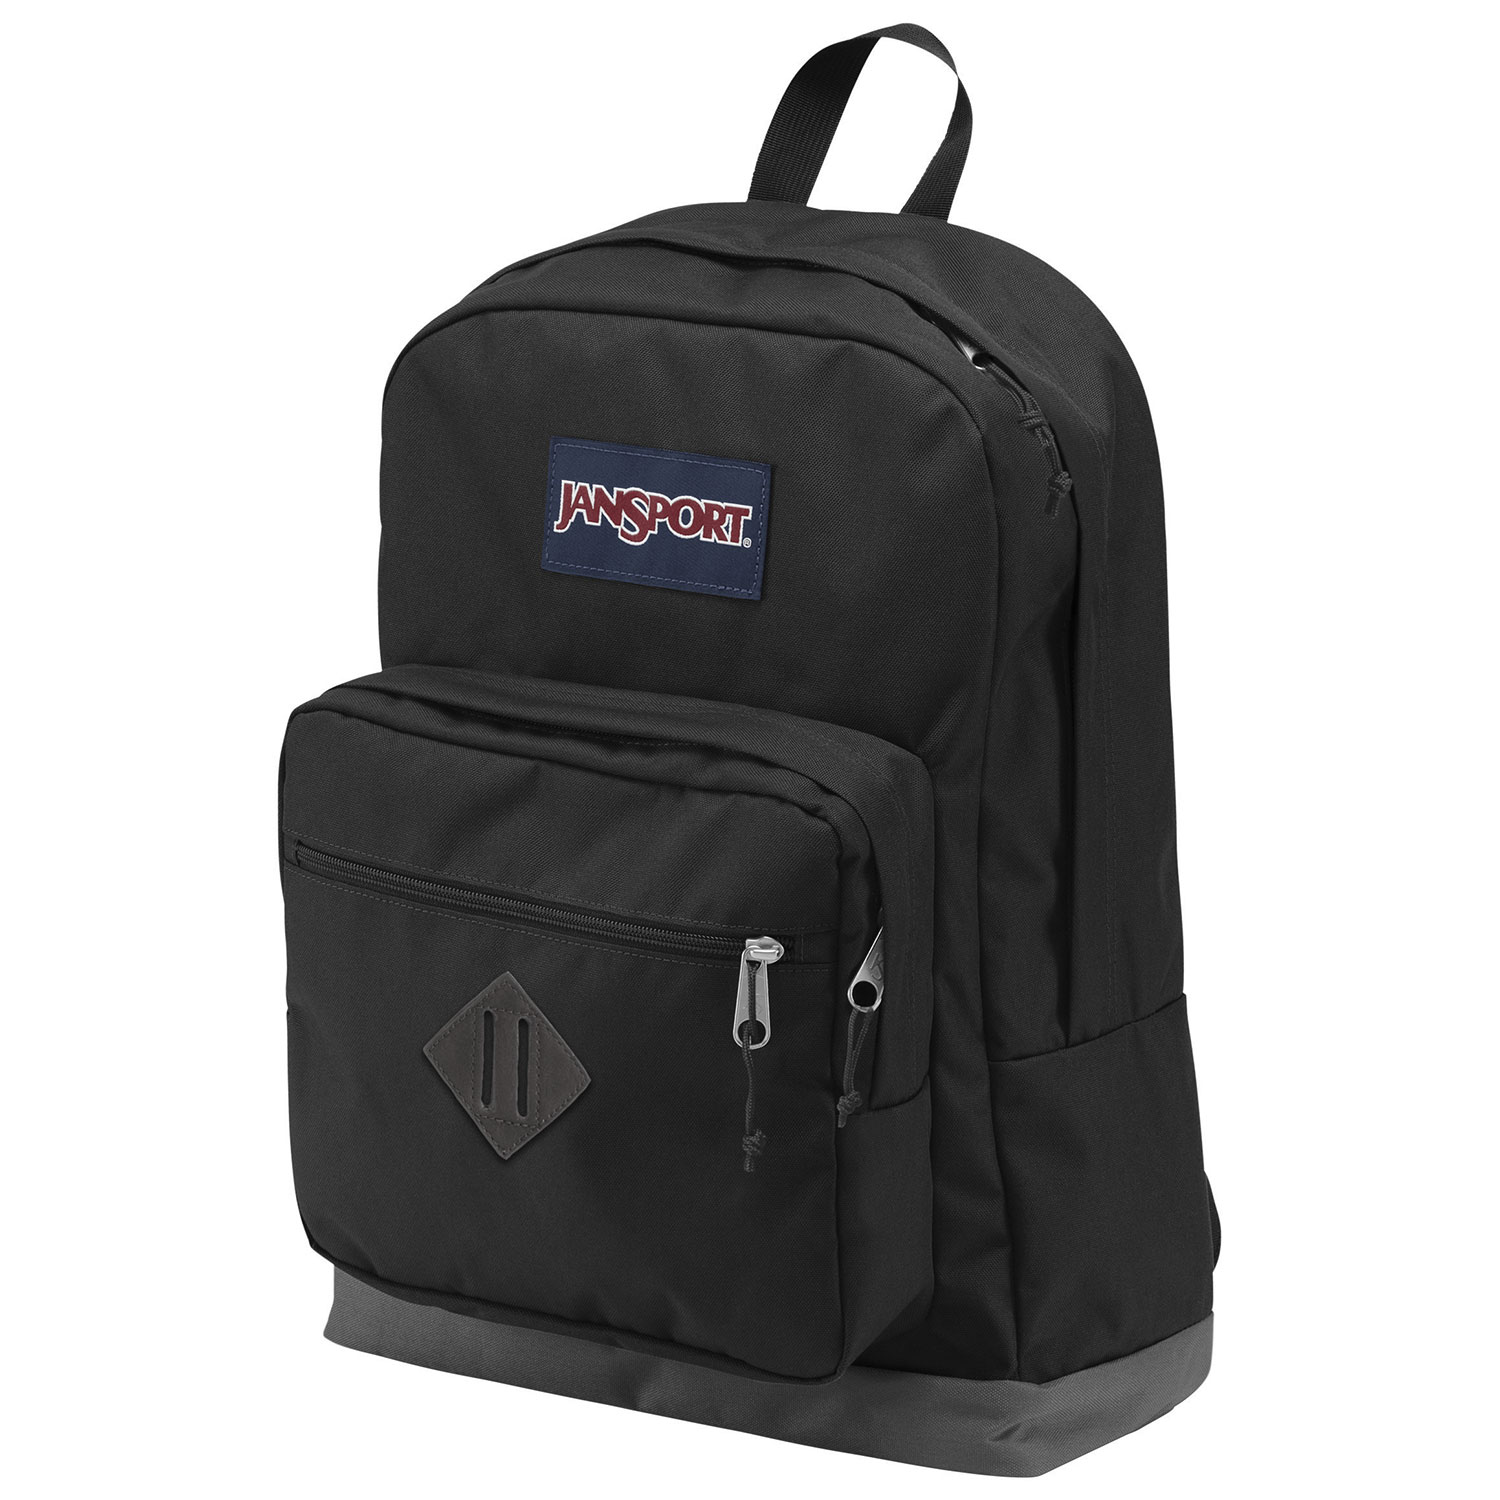 Sac à dos de 31 l City Scout de JanSport